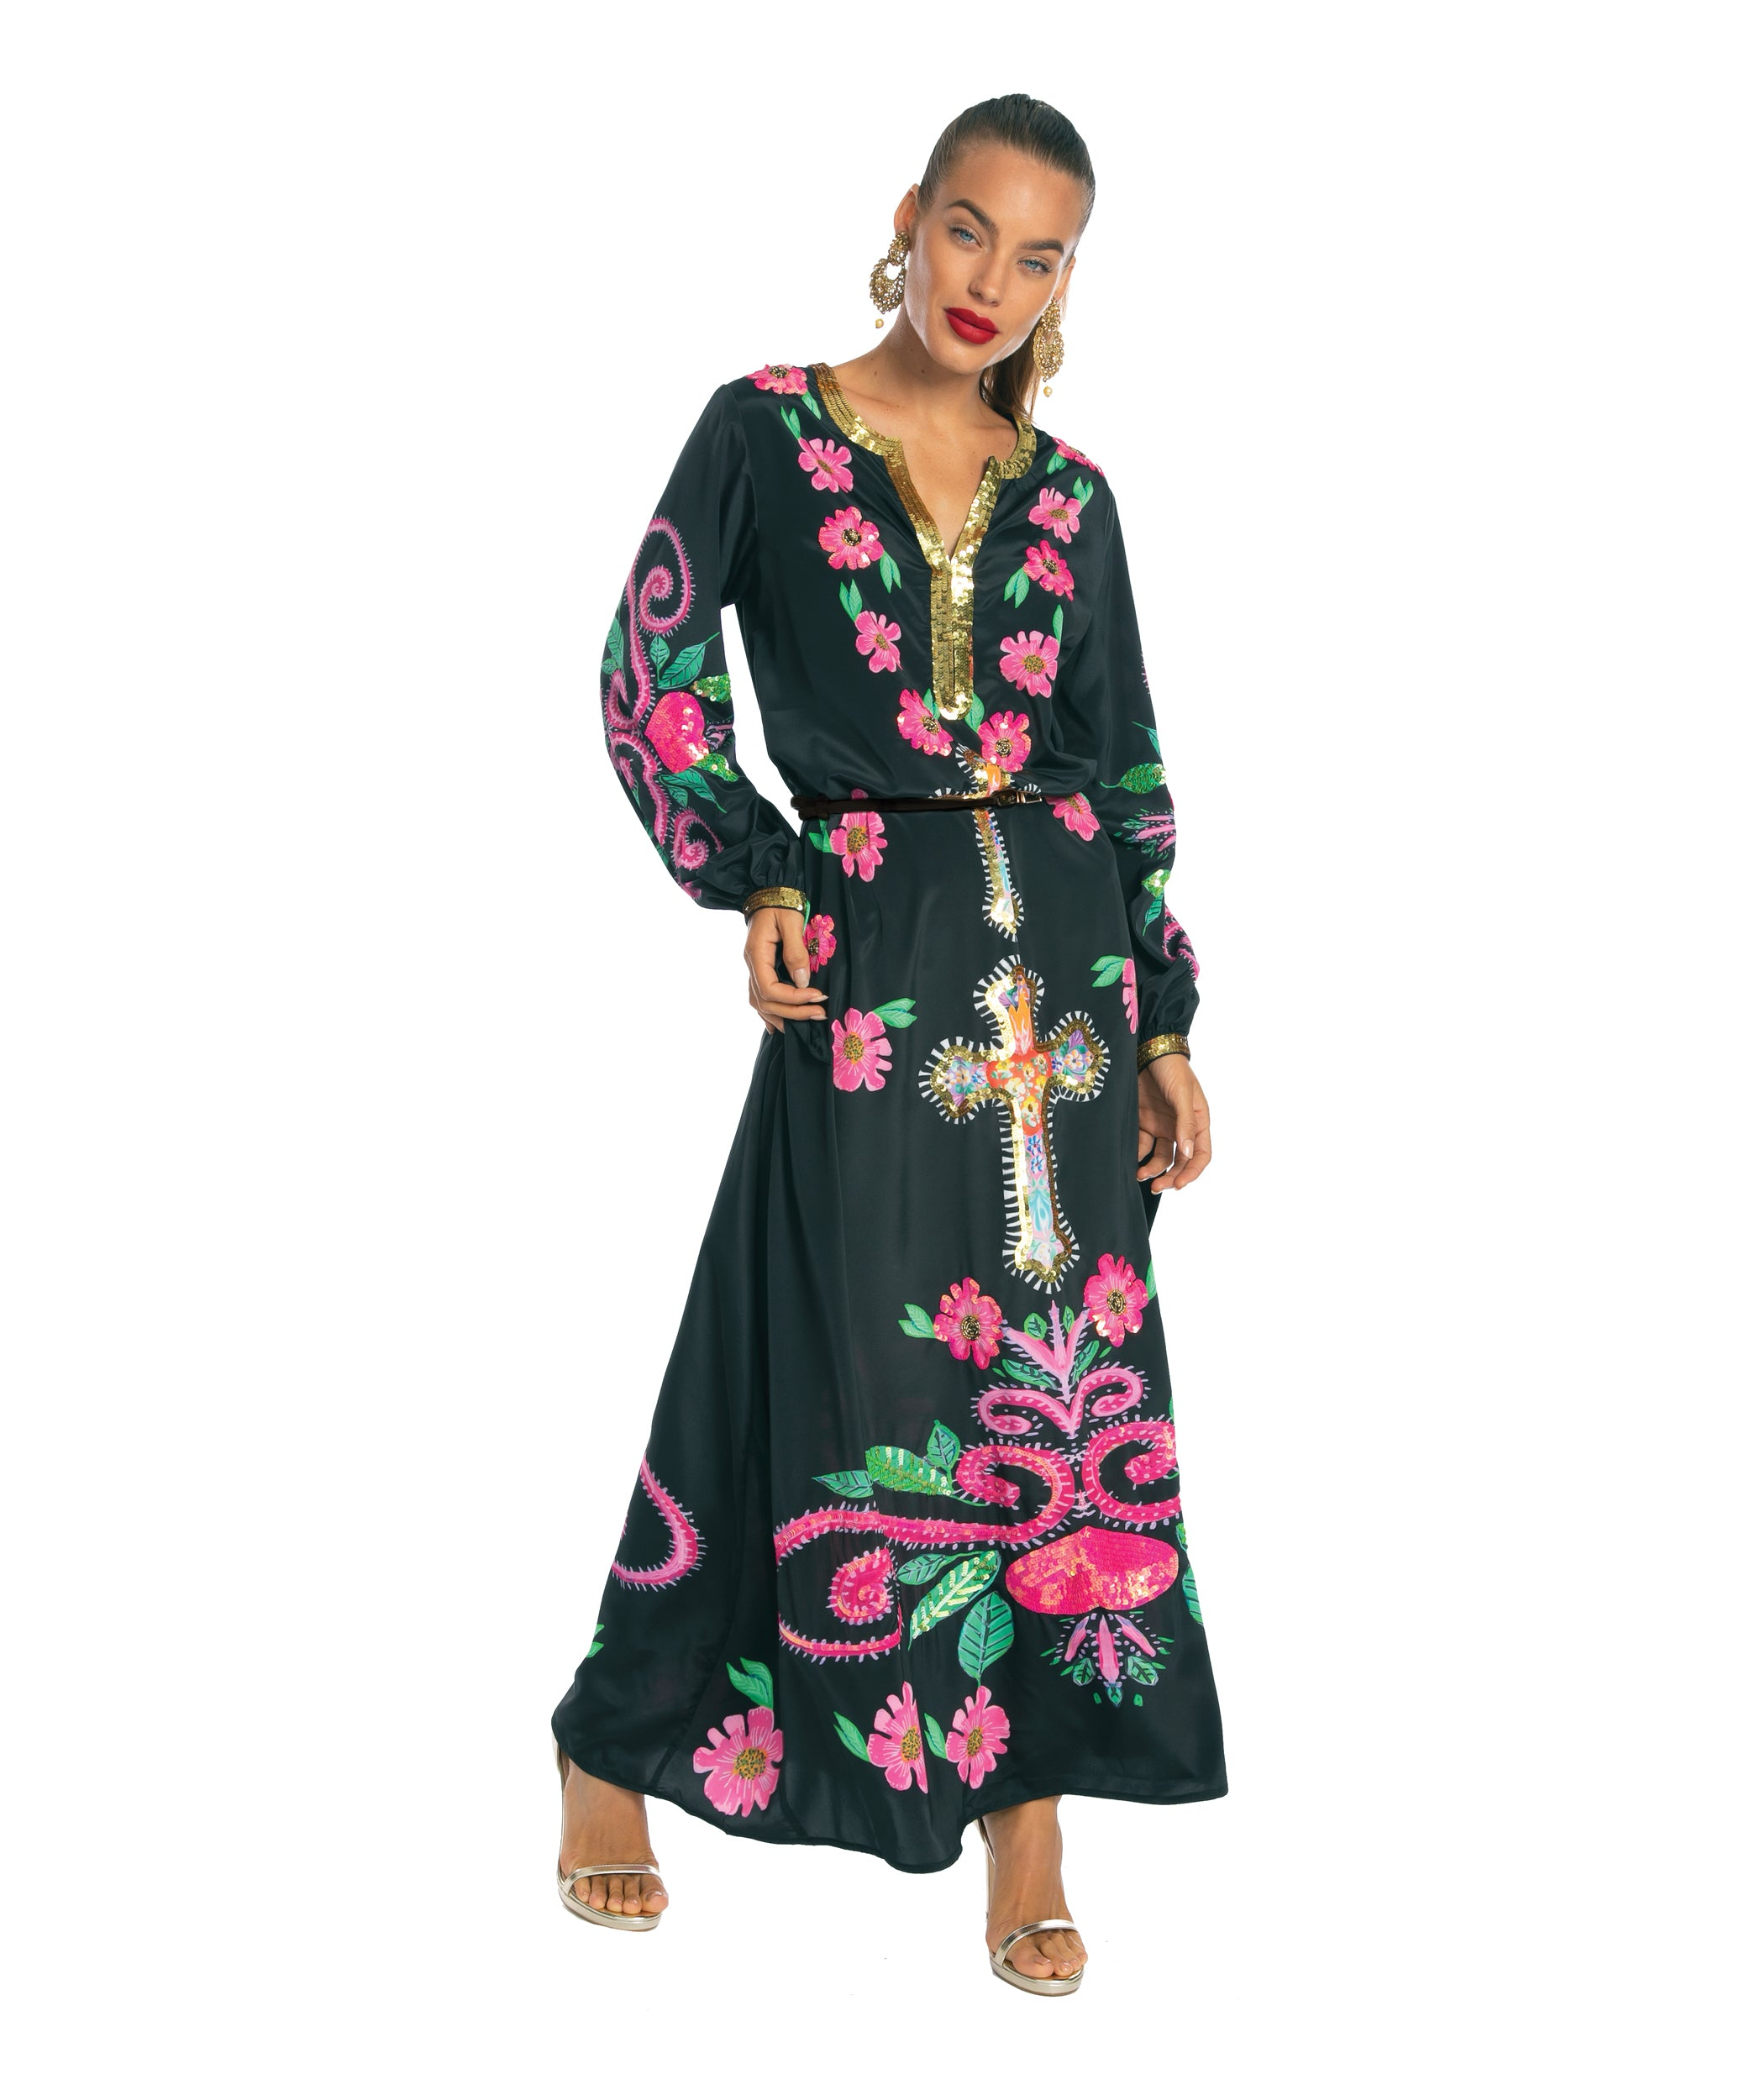 The Mexican Cross Kaftan